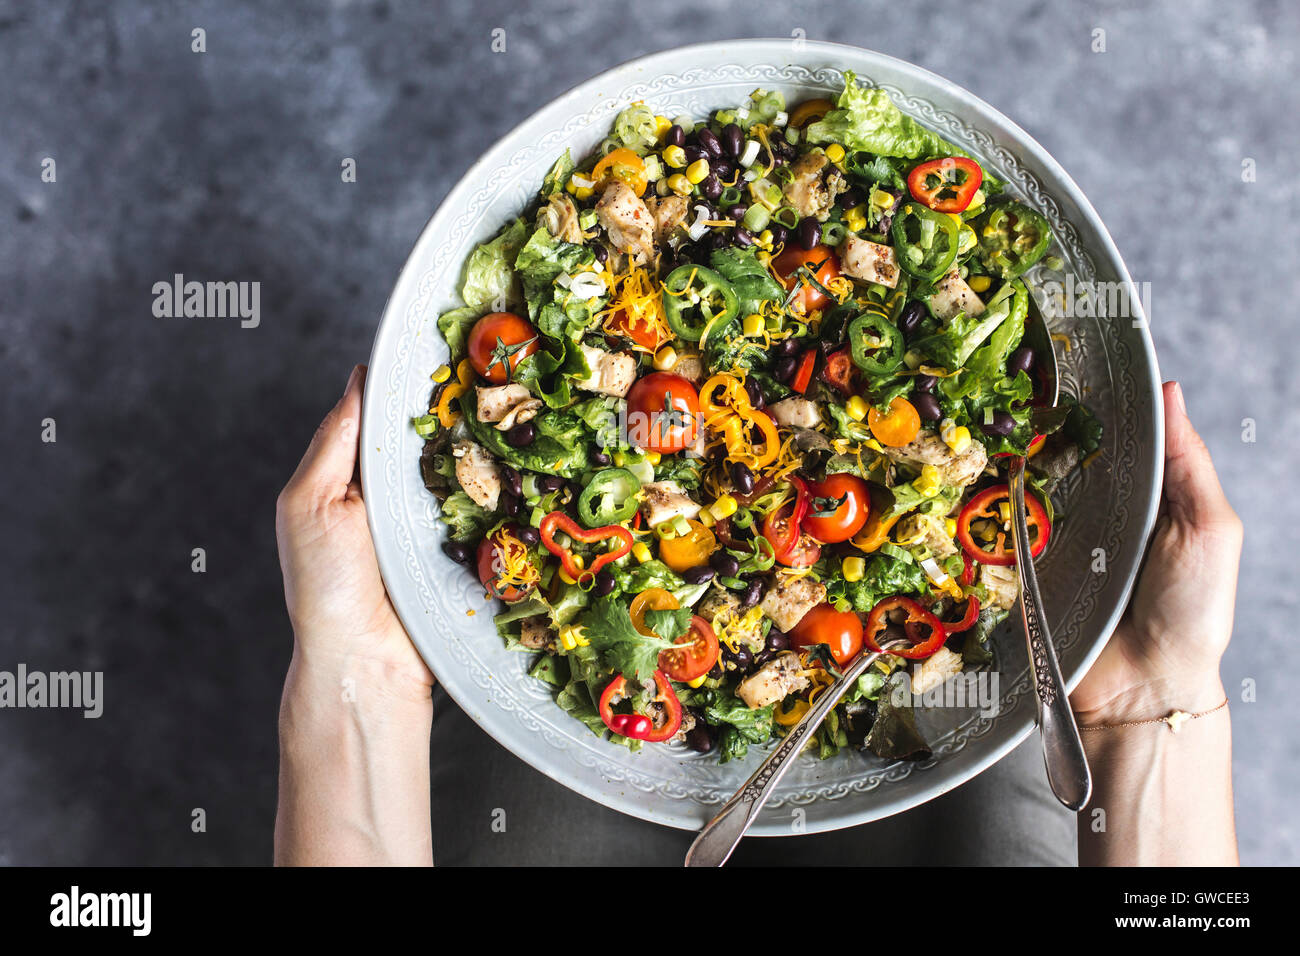 A large bowl of Southwestern Chicken Salad with Creamy Avocado Dressing in a woman's hands is photographed from - Stock Image